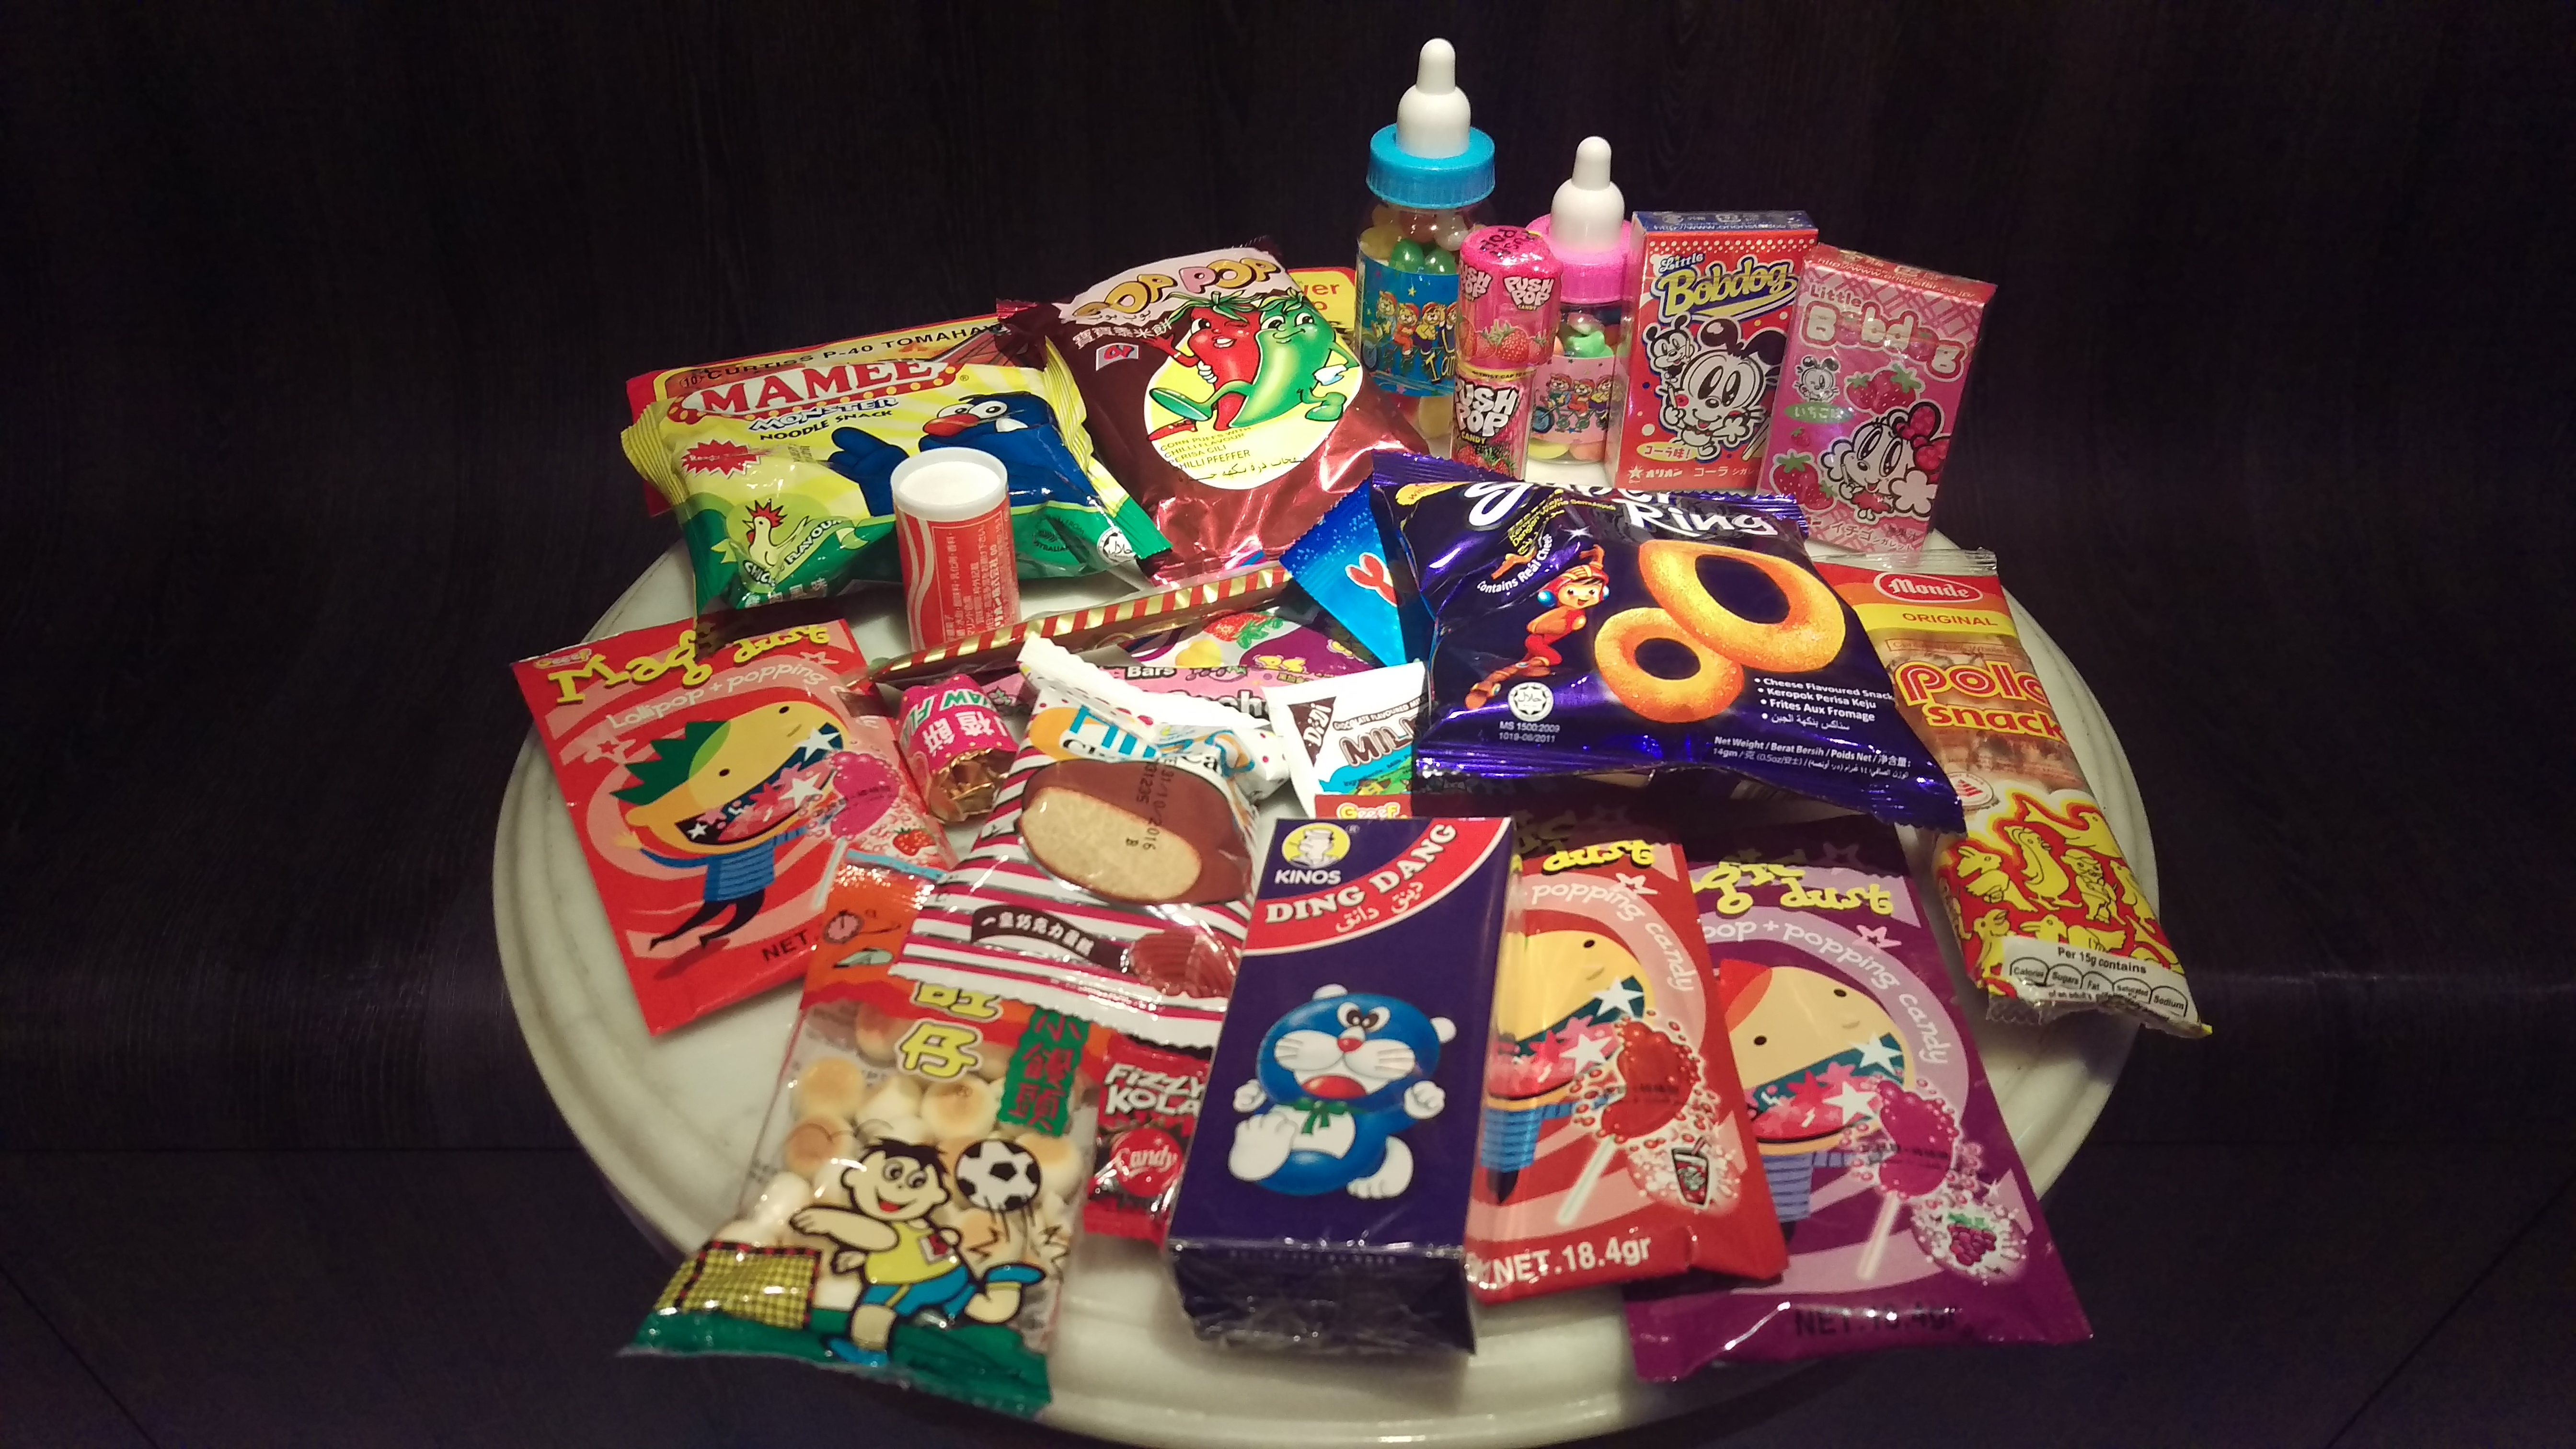 Retro snacks from our childhood... yay hey!